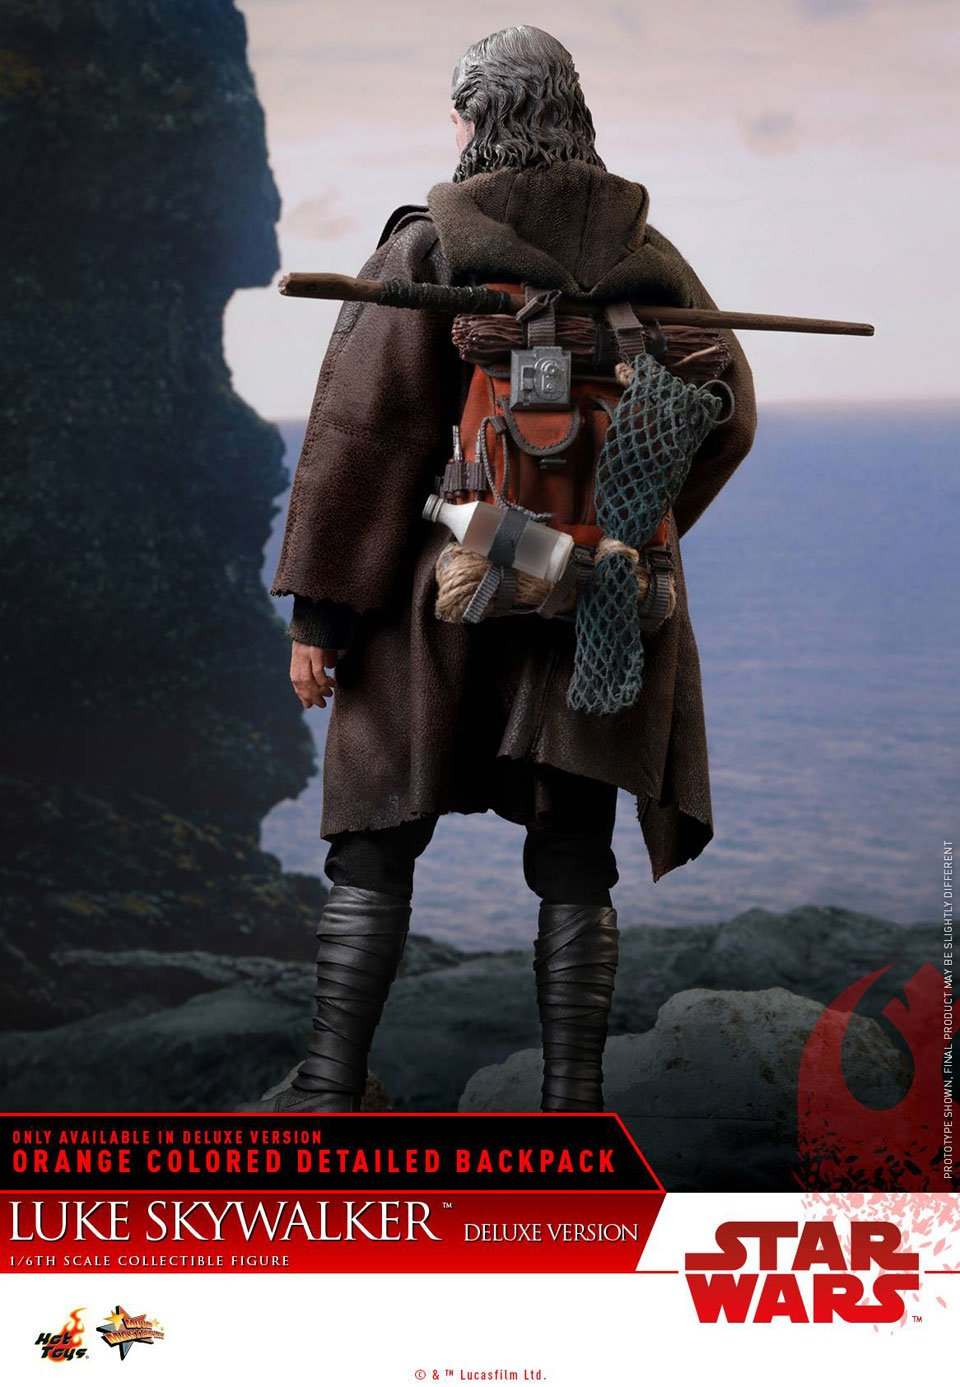 Hot Toys Luke Skywalker Last Jedi Figure